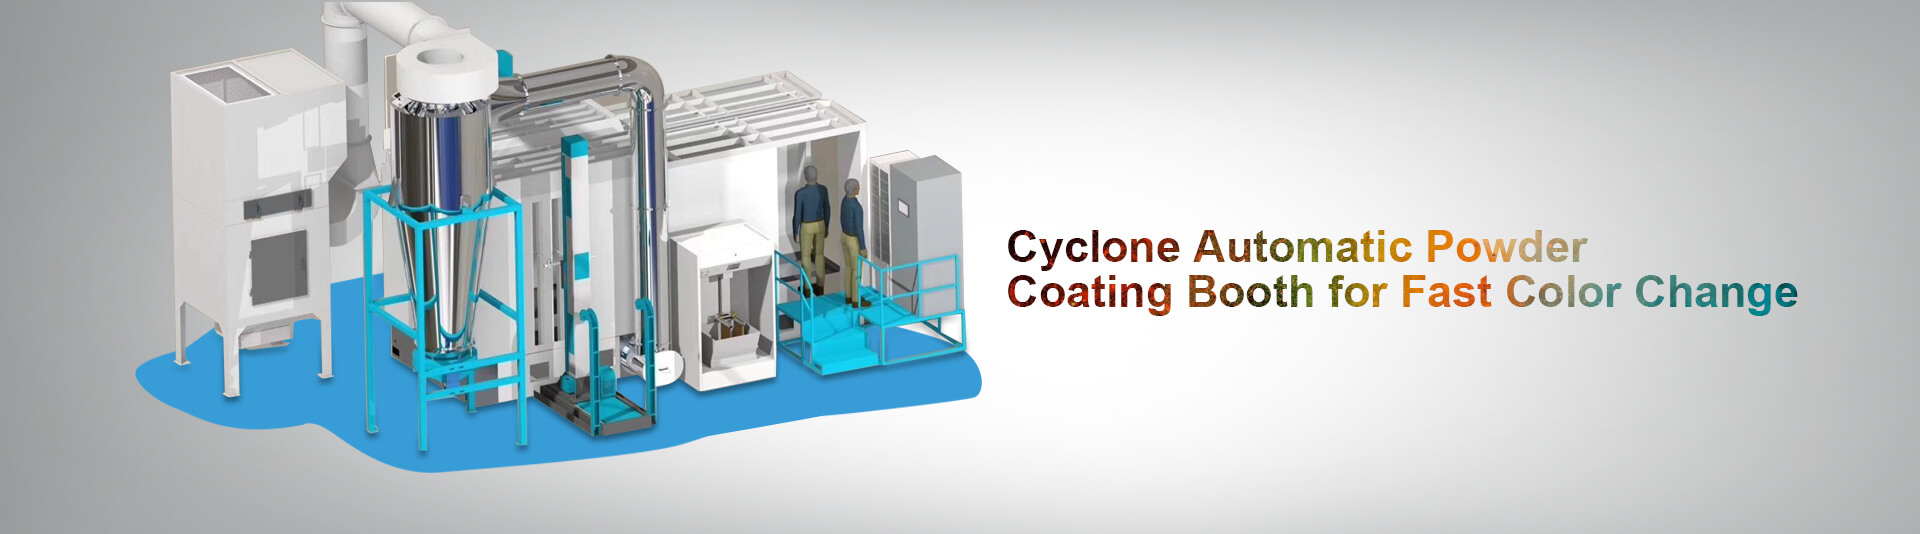 COLO-660T-H Budget-Saving Small Powder Coating Machine with 10lbs Fluidizing Hopper